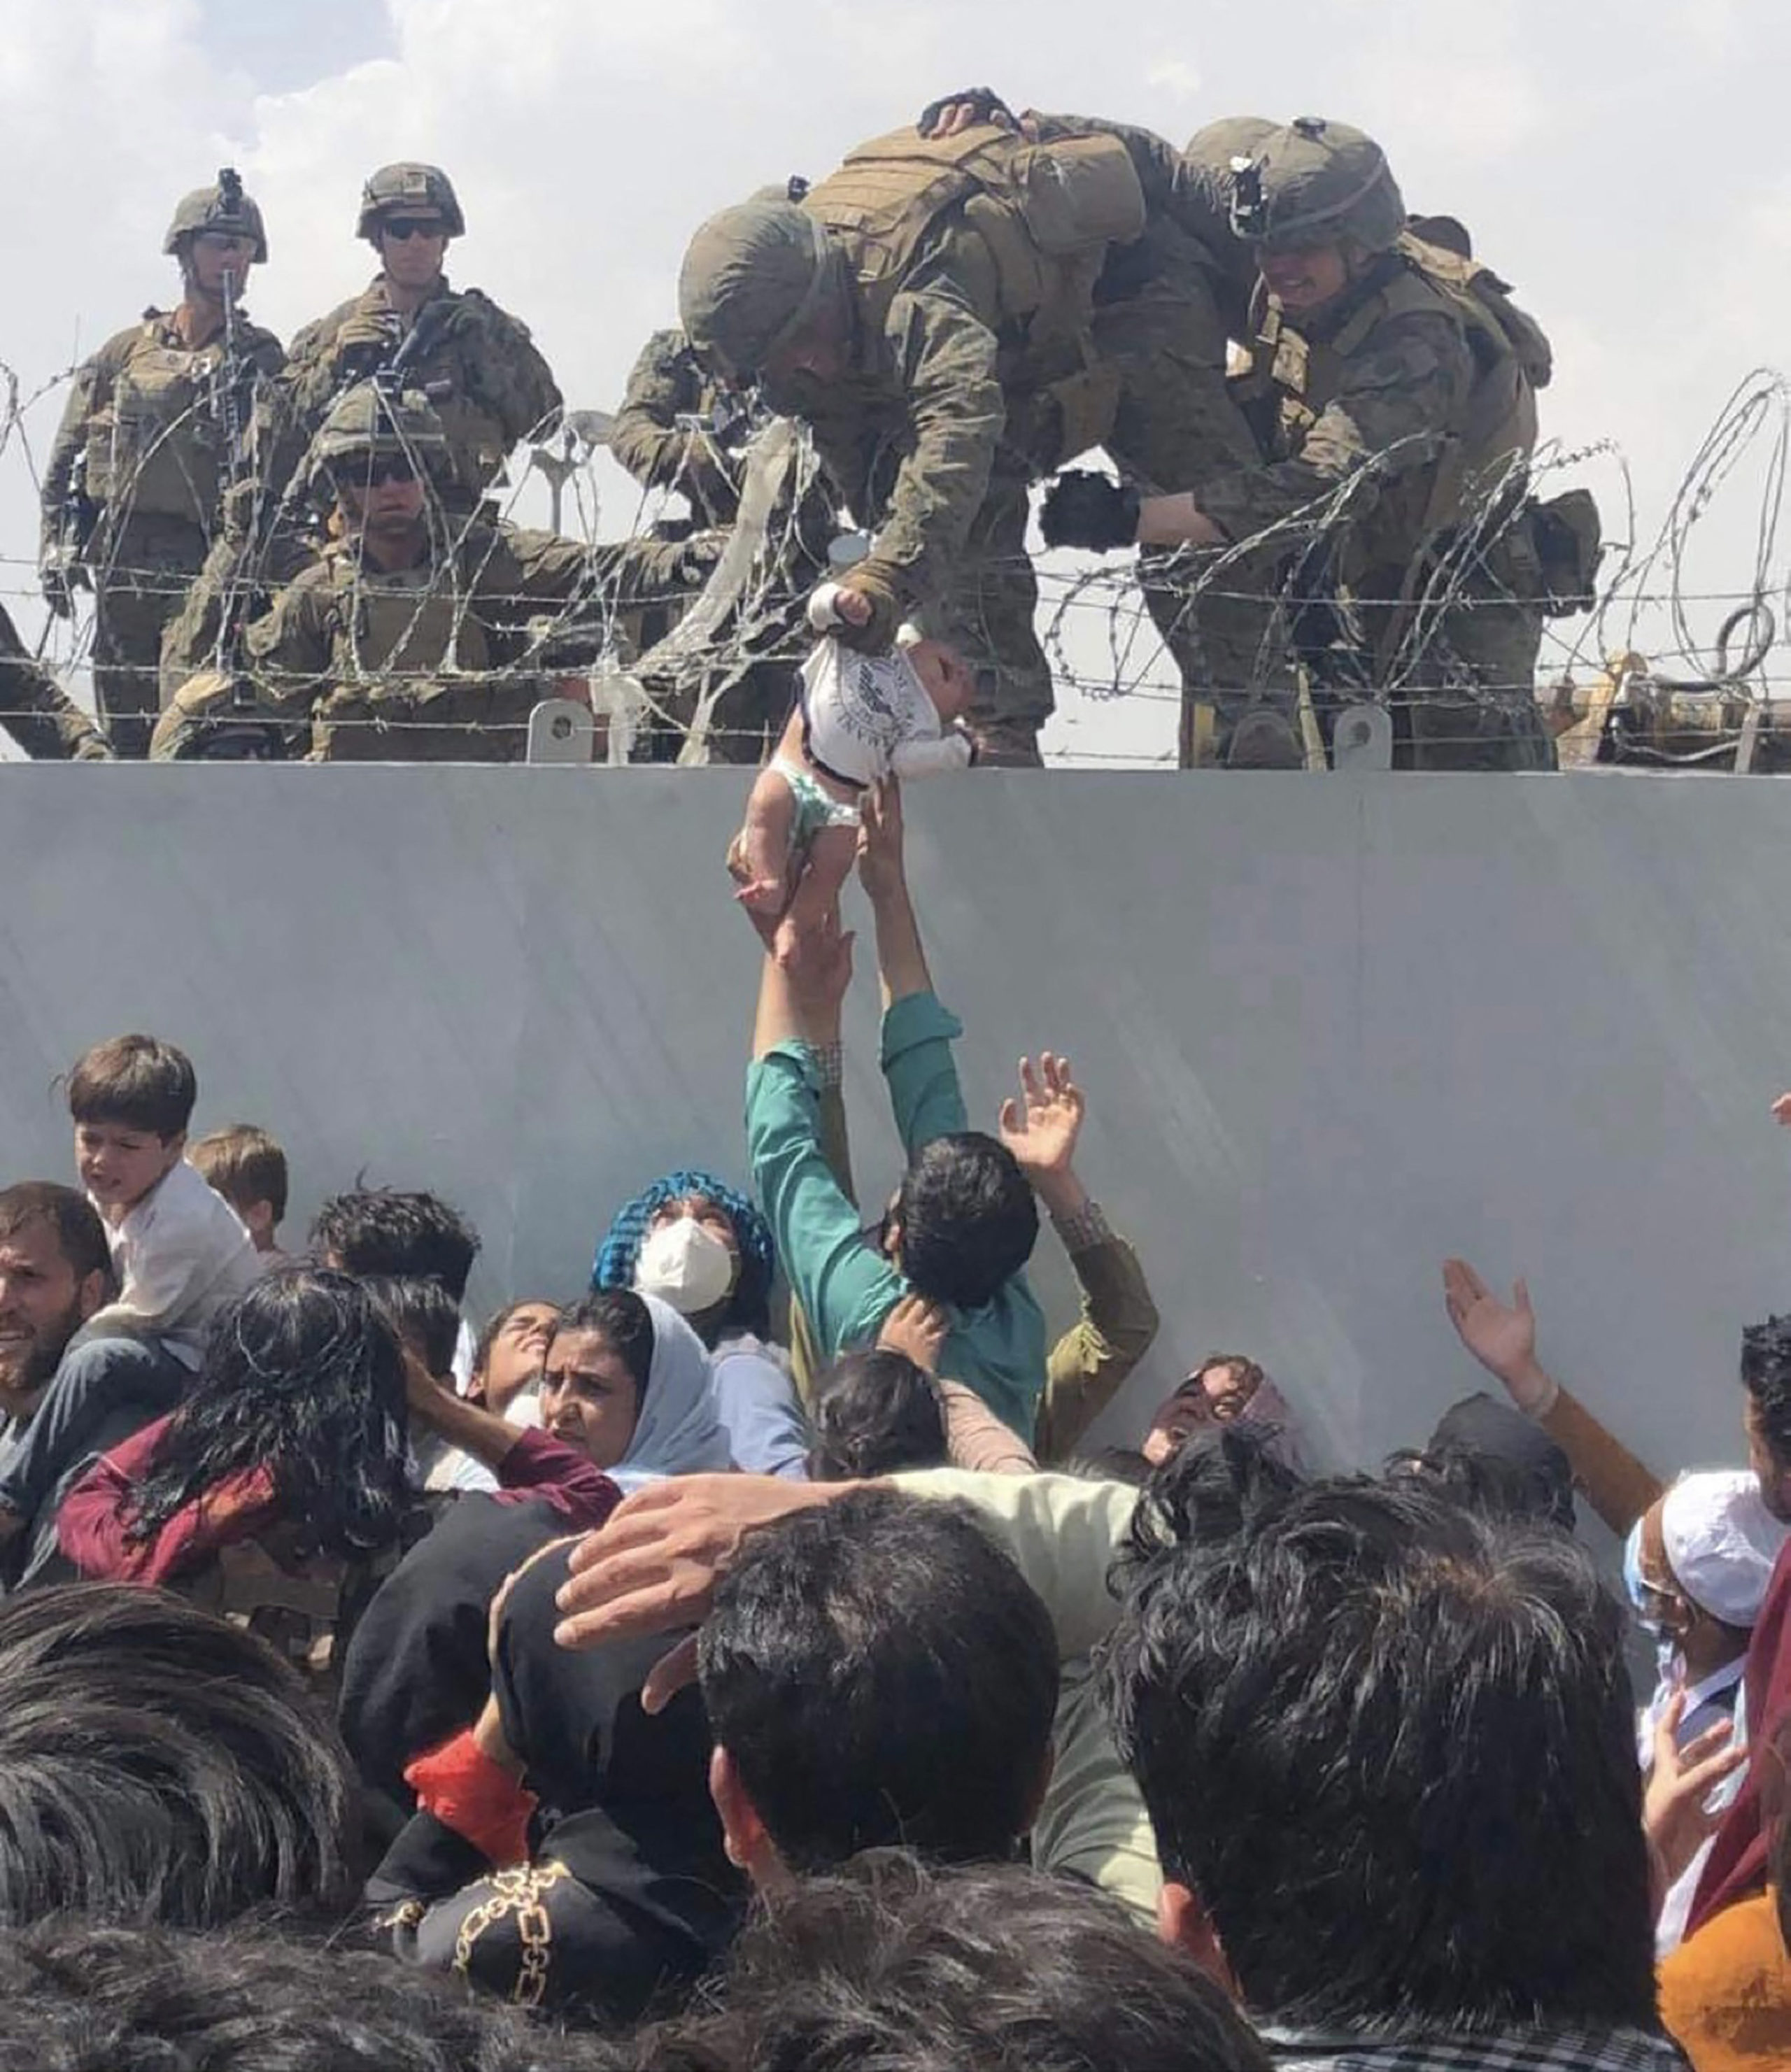 """TOPSHOT - This image made available to AFP on August 20, 2021 by Omar Haidiri, shows a US Marine grabbing an infant over a fence of barbed wire during an evacuation at Hamid Karzai International Airport in Kabul on August 19, 2021. - A Pentagon official confirmed Friday that US evacuation operations from Kabul's airport have been stalling because the receiving base in Qatar is overflowing and could not receive evacuees. """"There has been a considerable amount of time today where there haven't been departures,"""" Brigadier General Dan DeVoe of the US Air Mobility Command told reporters. (Photo by Omar HAIDIRI / Courtesy of Omar Haidiri / AFP) (Photo by OMAR HAIDIRI/Courtesy of Omar Haidiri/AFP via Getty Images)"""